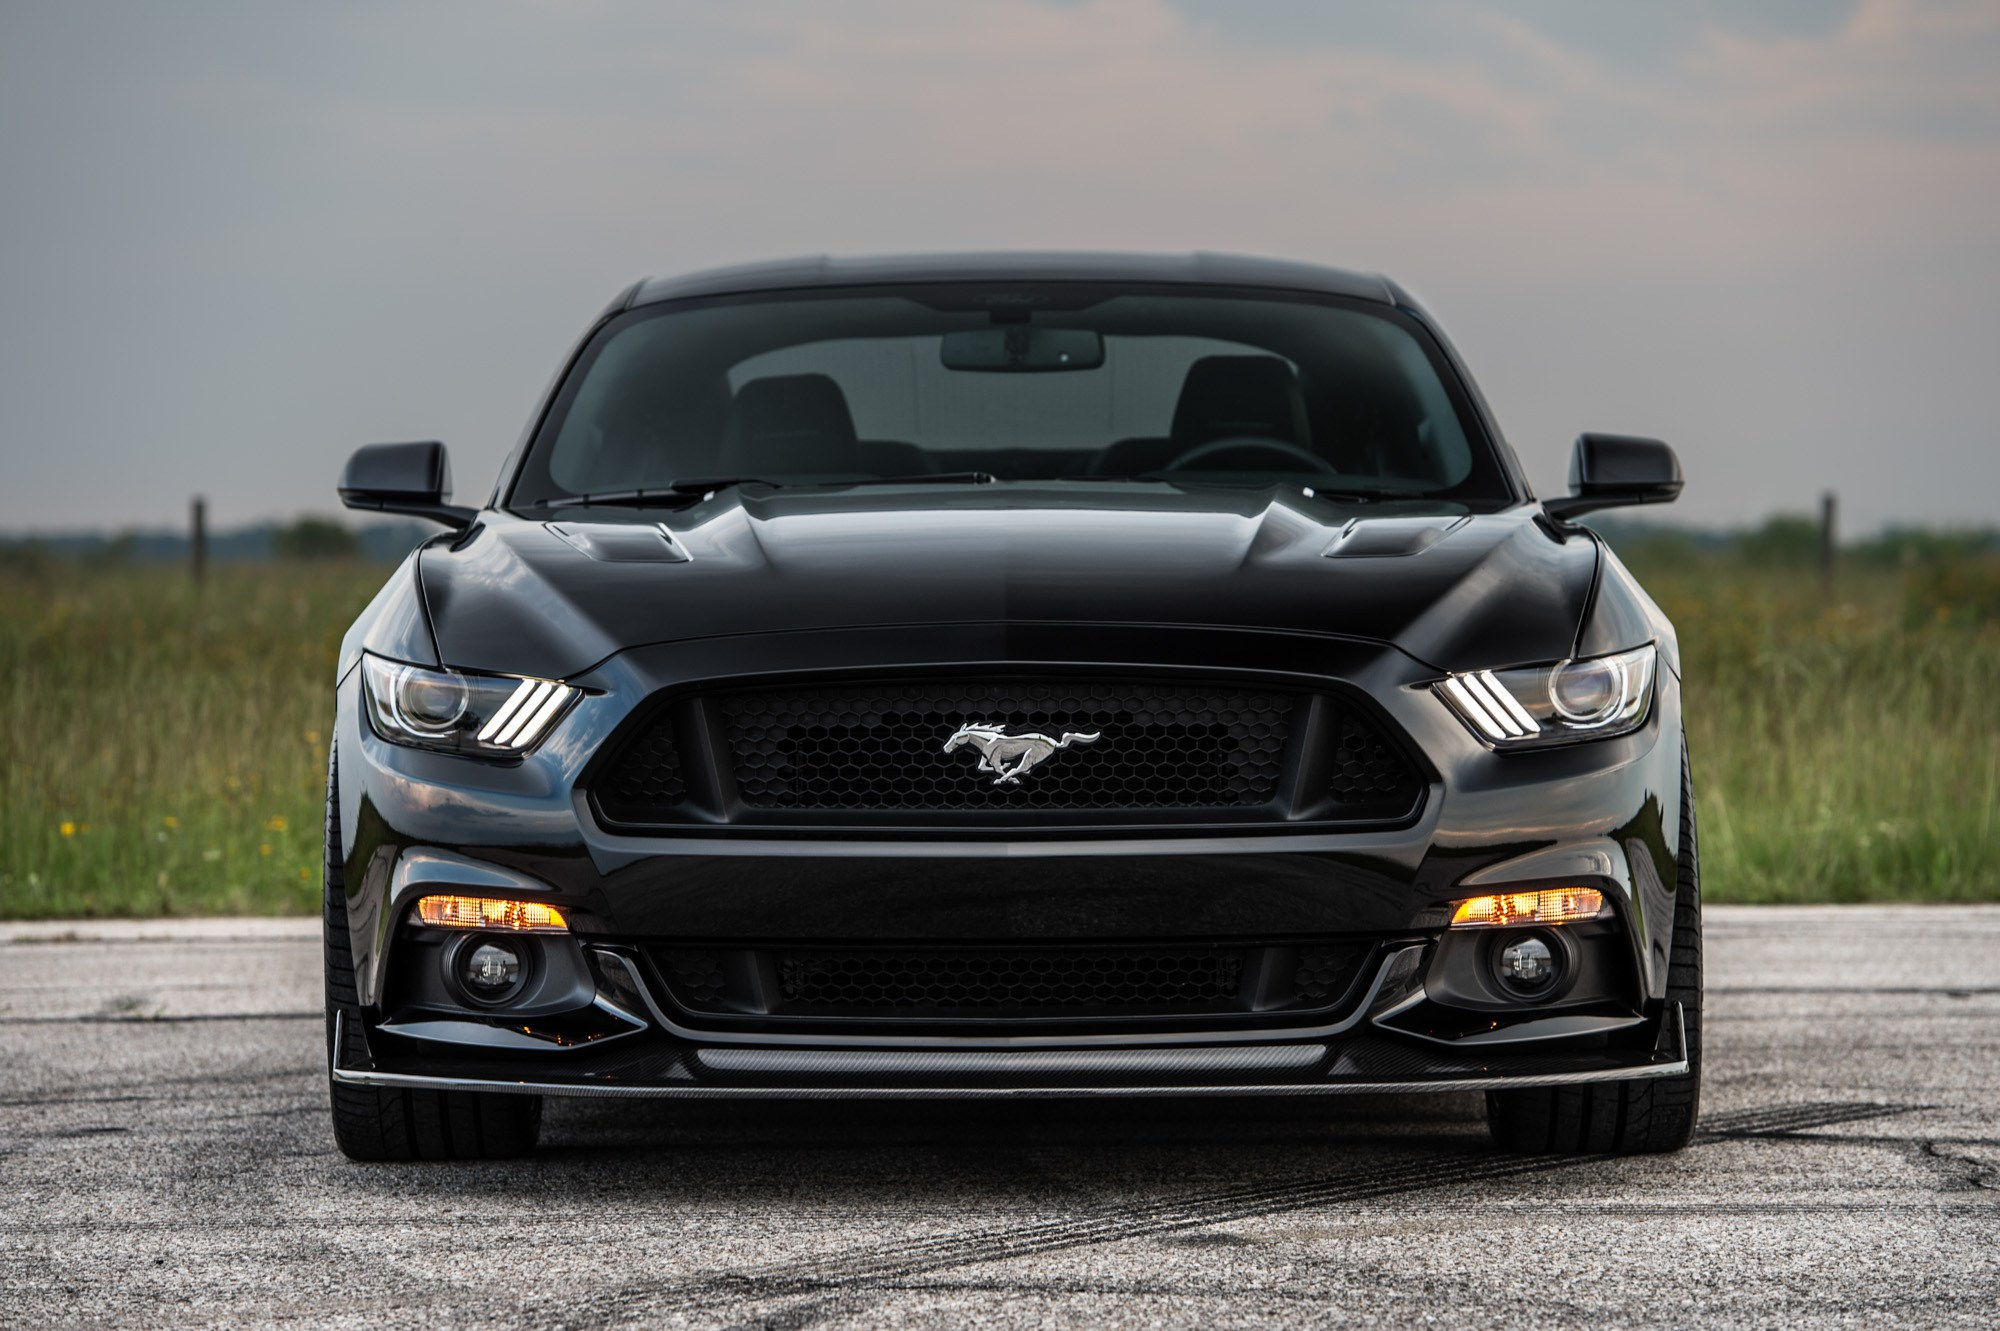 Hennessey 25th Anniversary Edition Hpe800 Ford Mustang Is